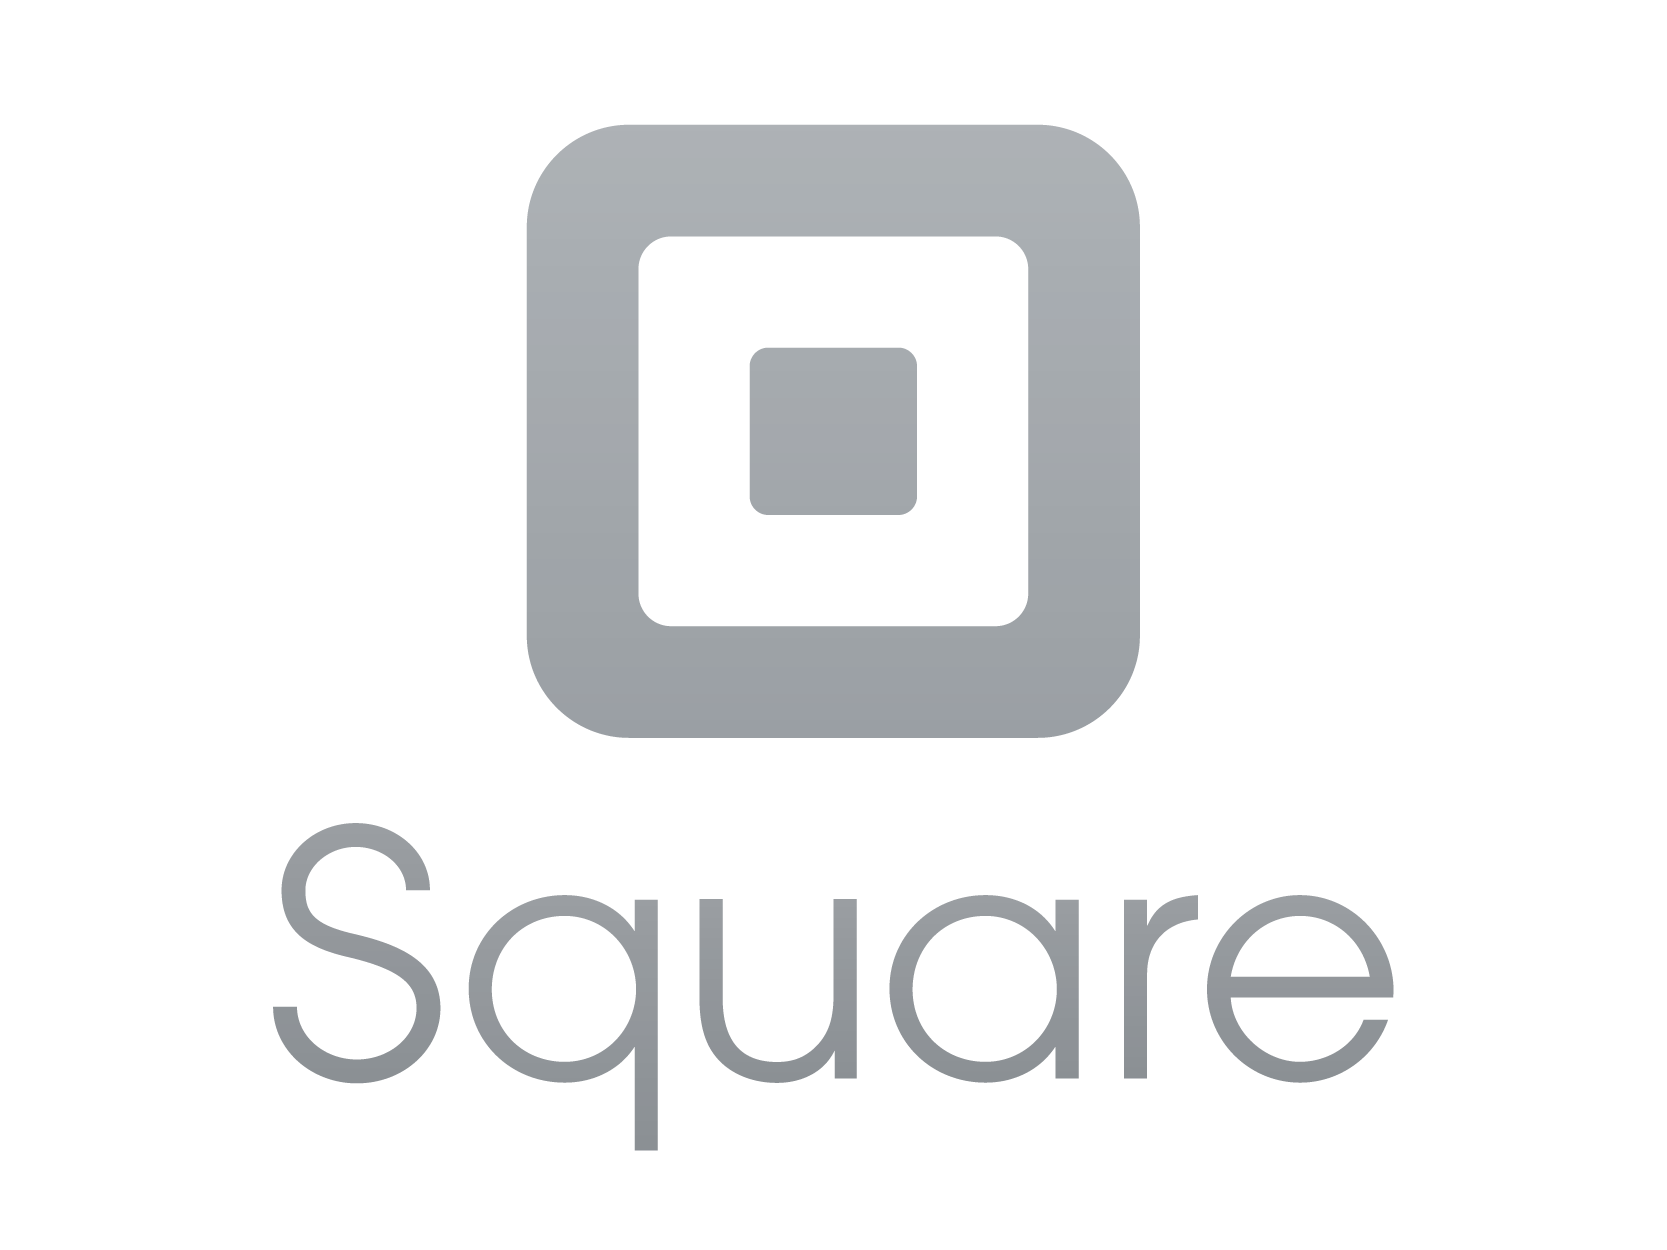 Cash app logo png. Square imore